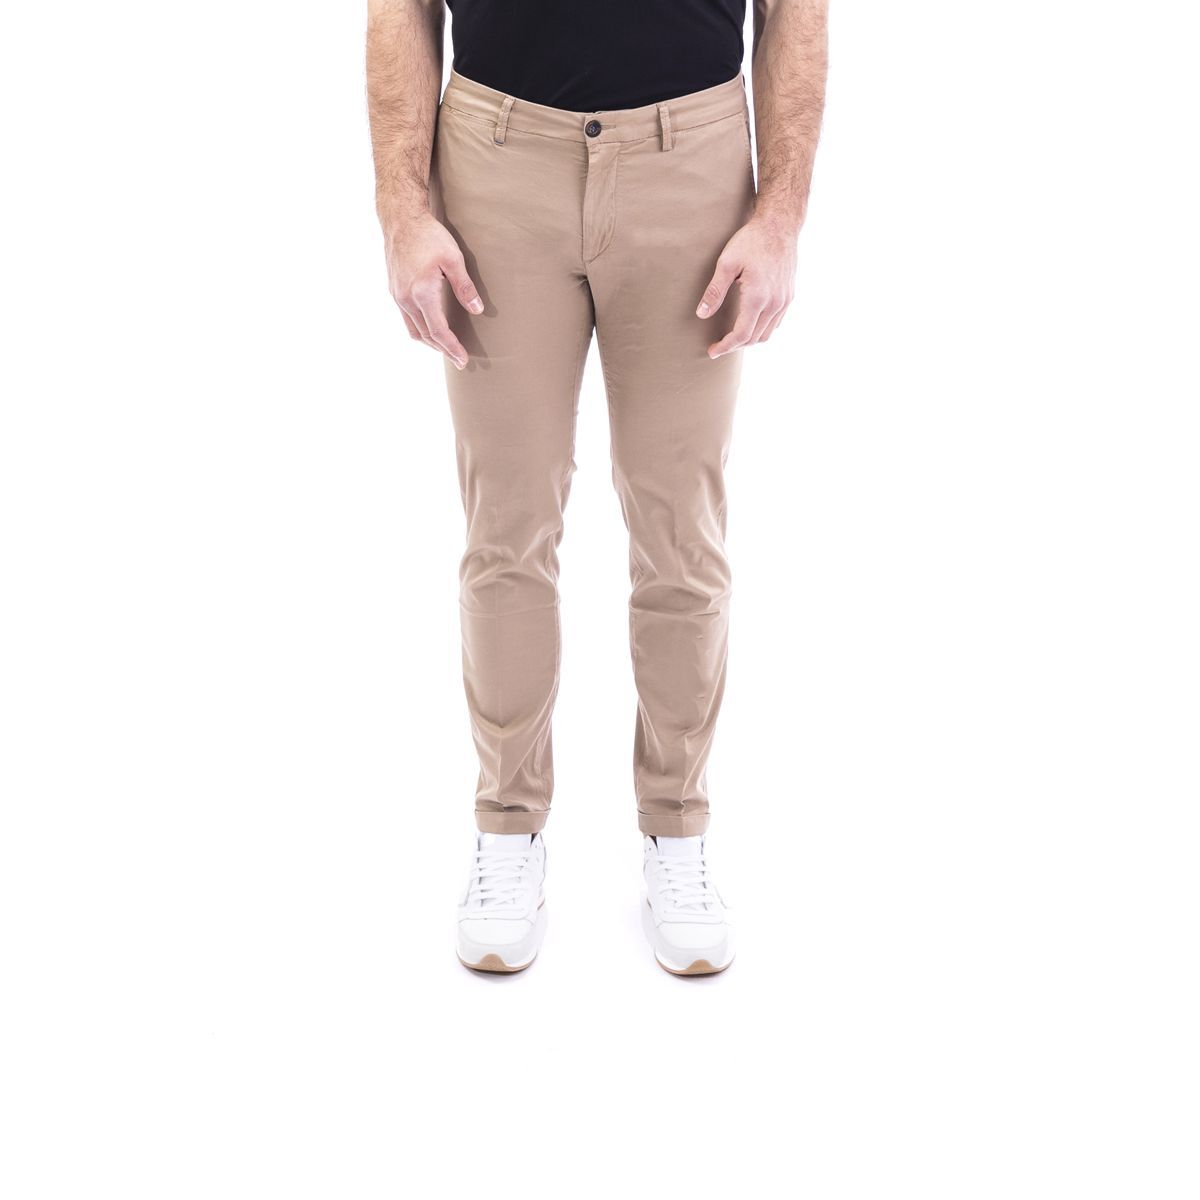 RE-HASH MEN'S P2492389BW0441 BEIGE COTTON PANTS